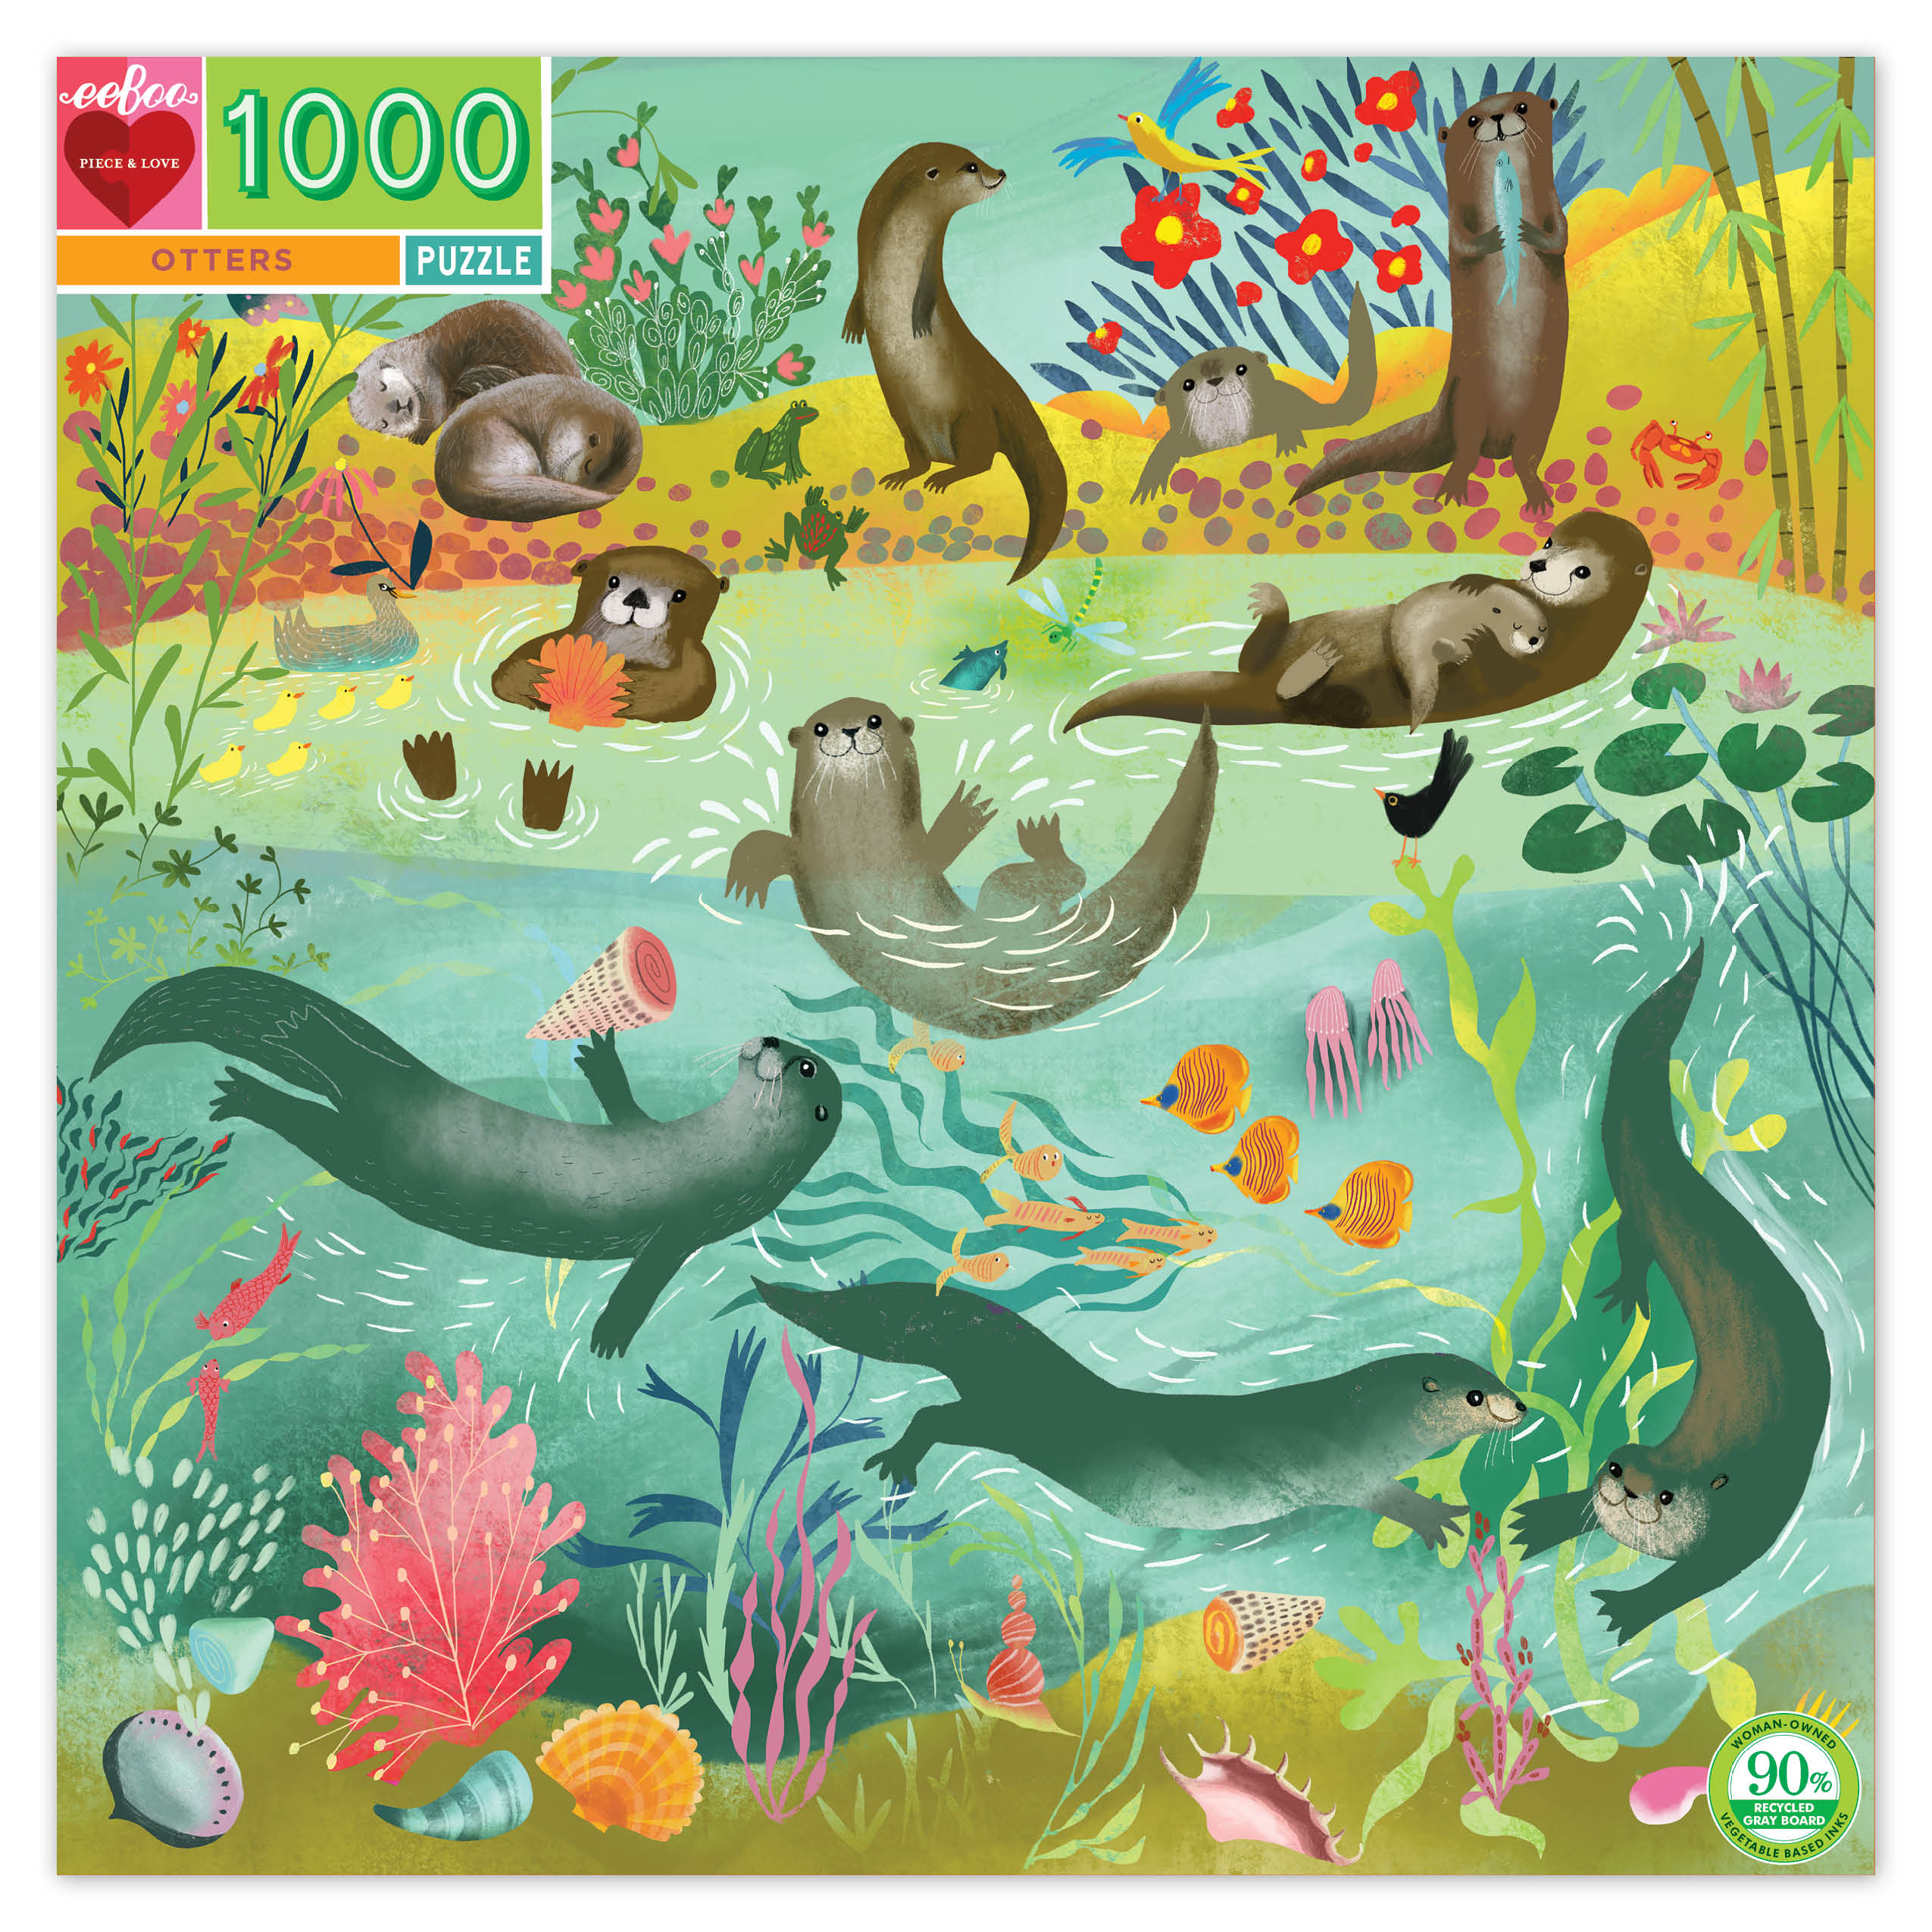 Otters 1000 Piece Jigsaw Puzzle by eeboo